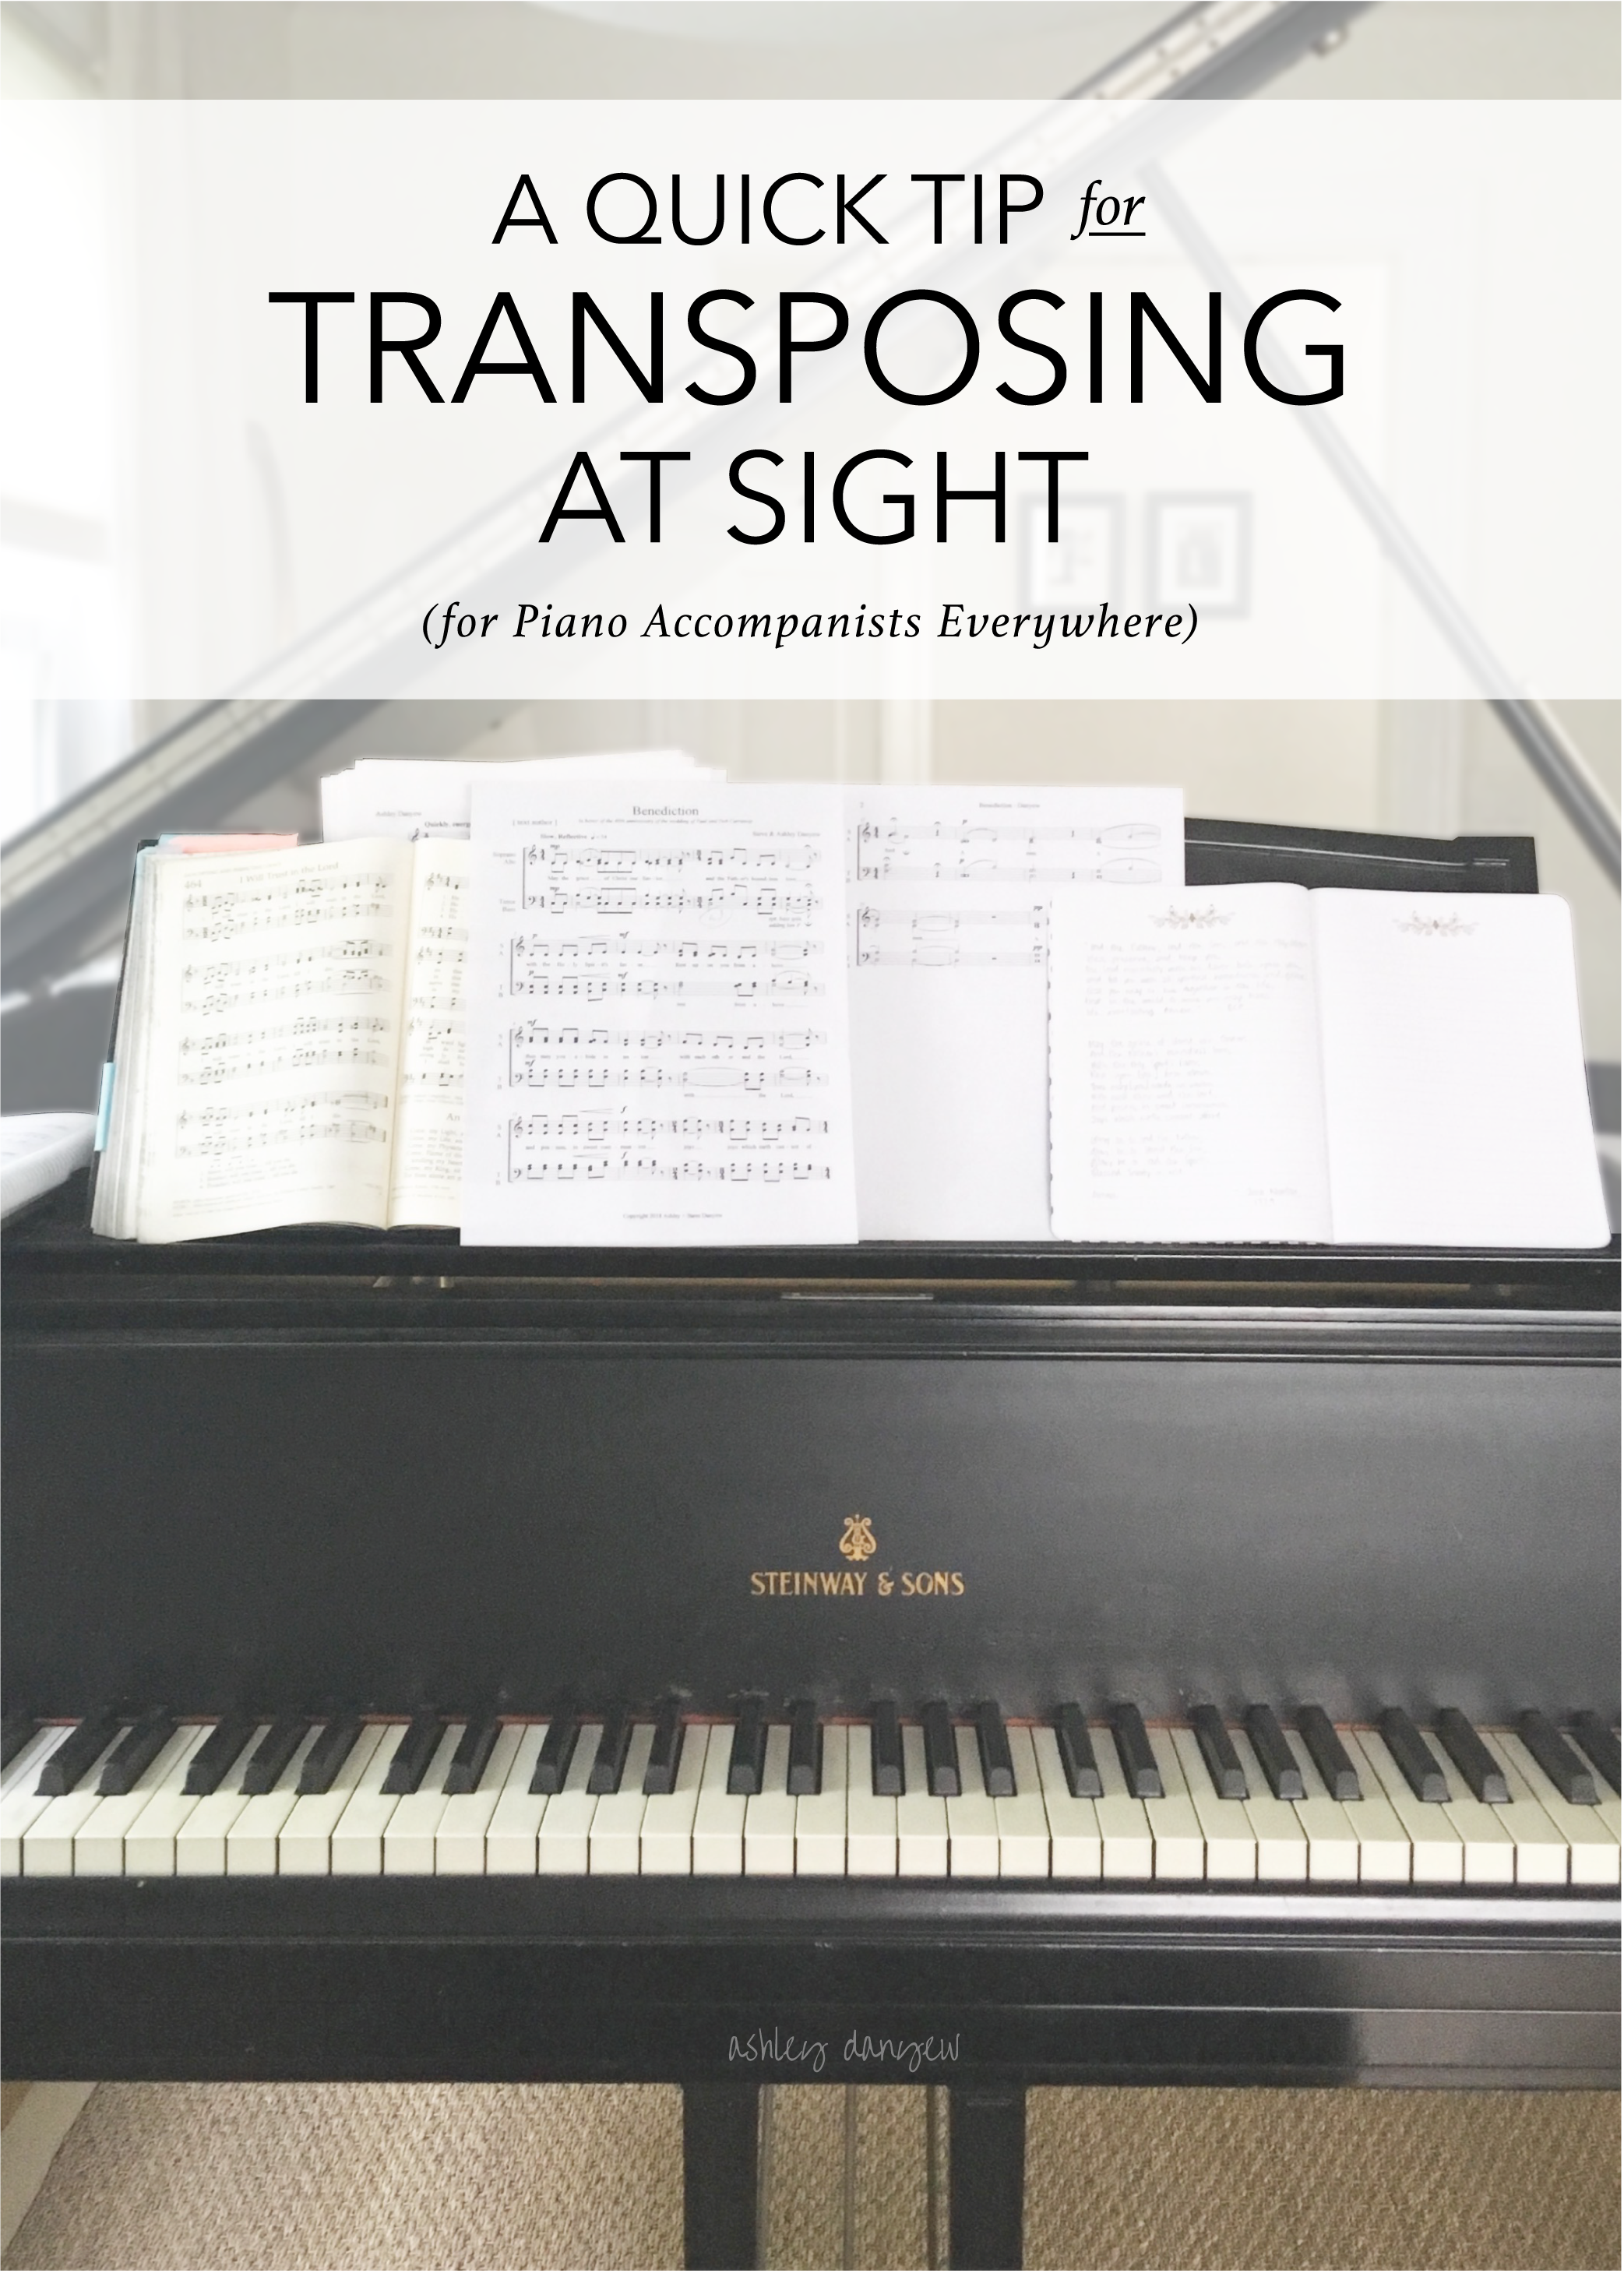 Copy of A Quick Tip for Transposing at Sight (for Piano Accompanists Everywhere)